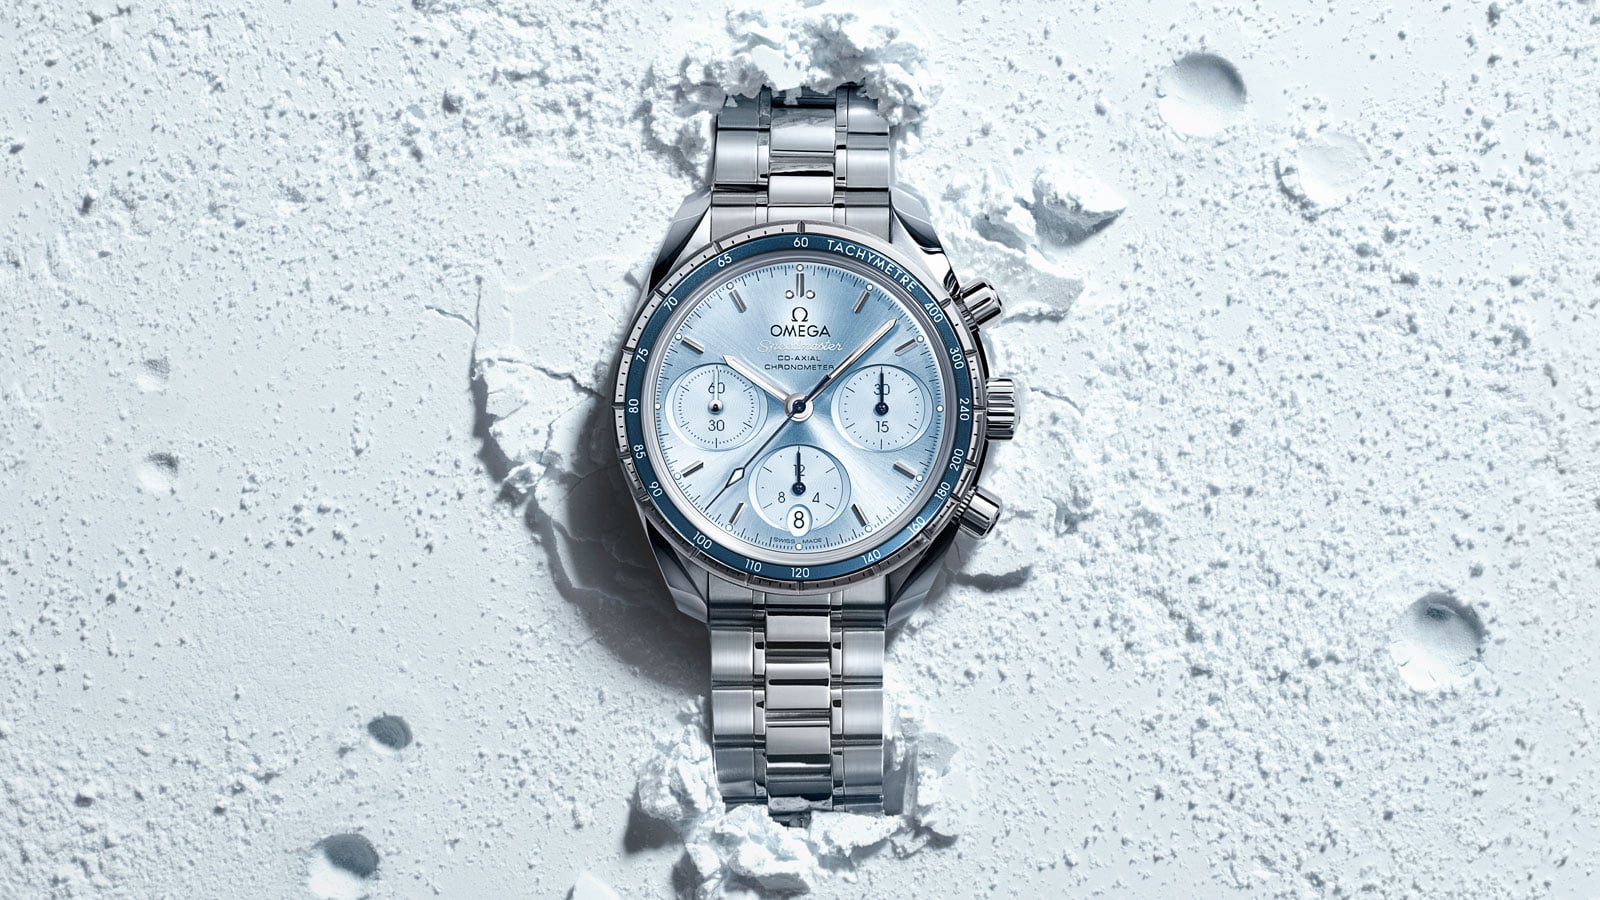 Contextual view of a Speedmaster 38mm watch with a light blue dial and steel bracelet placed in sand